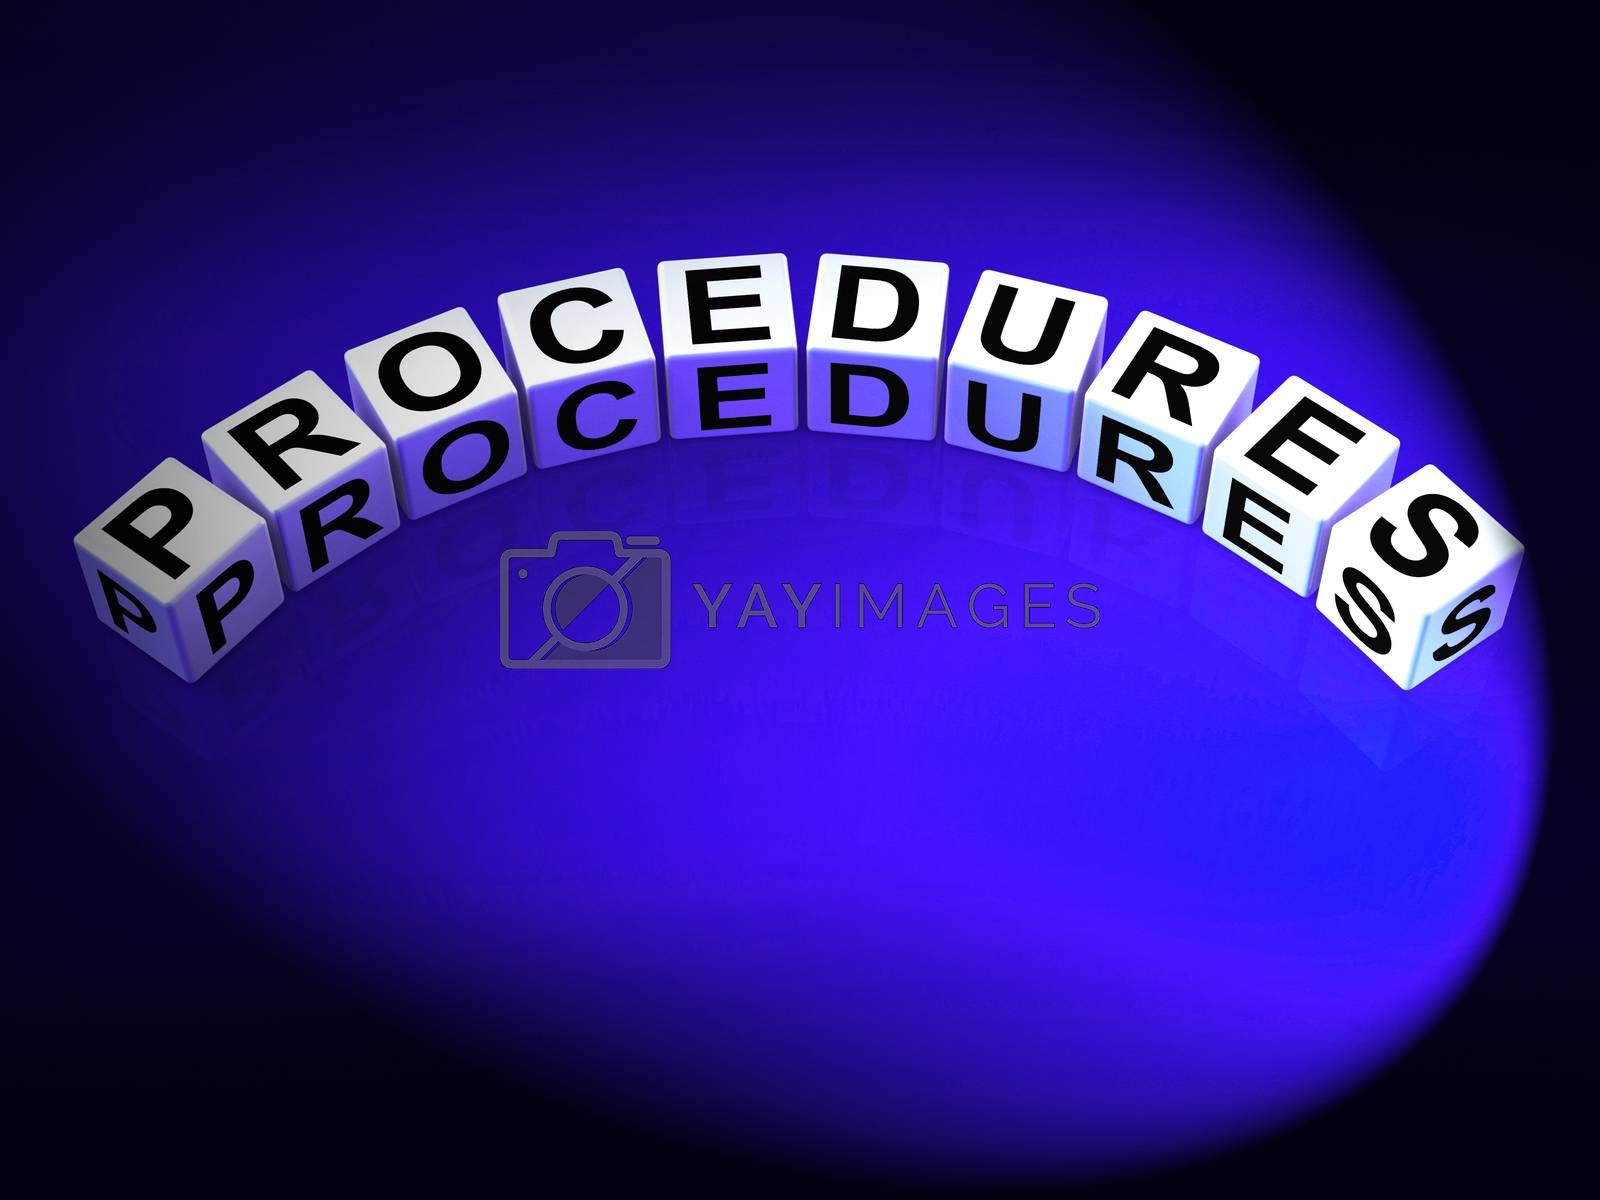 Procedures Dice Represent Strategic Process and Steps by stuartmiles